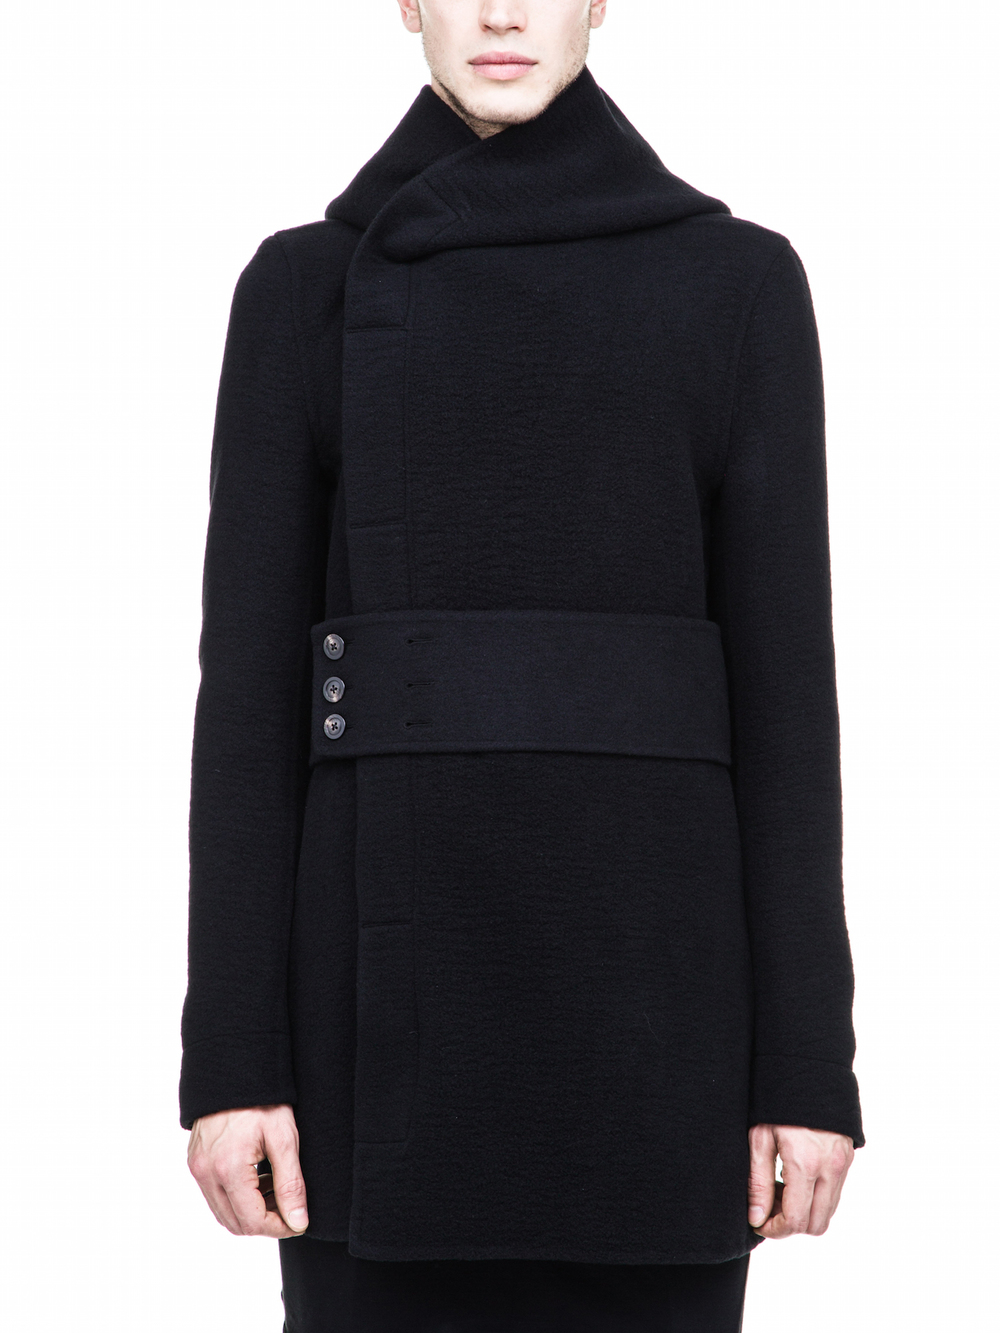 RICK OWENS HOODED PEACOAT IN BLACK CASHMERE